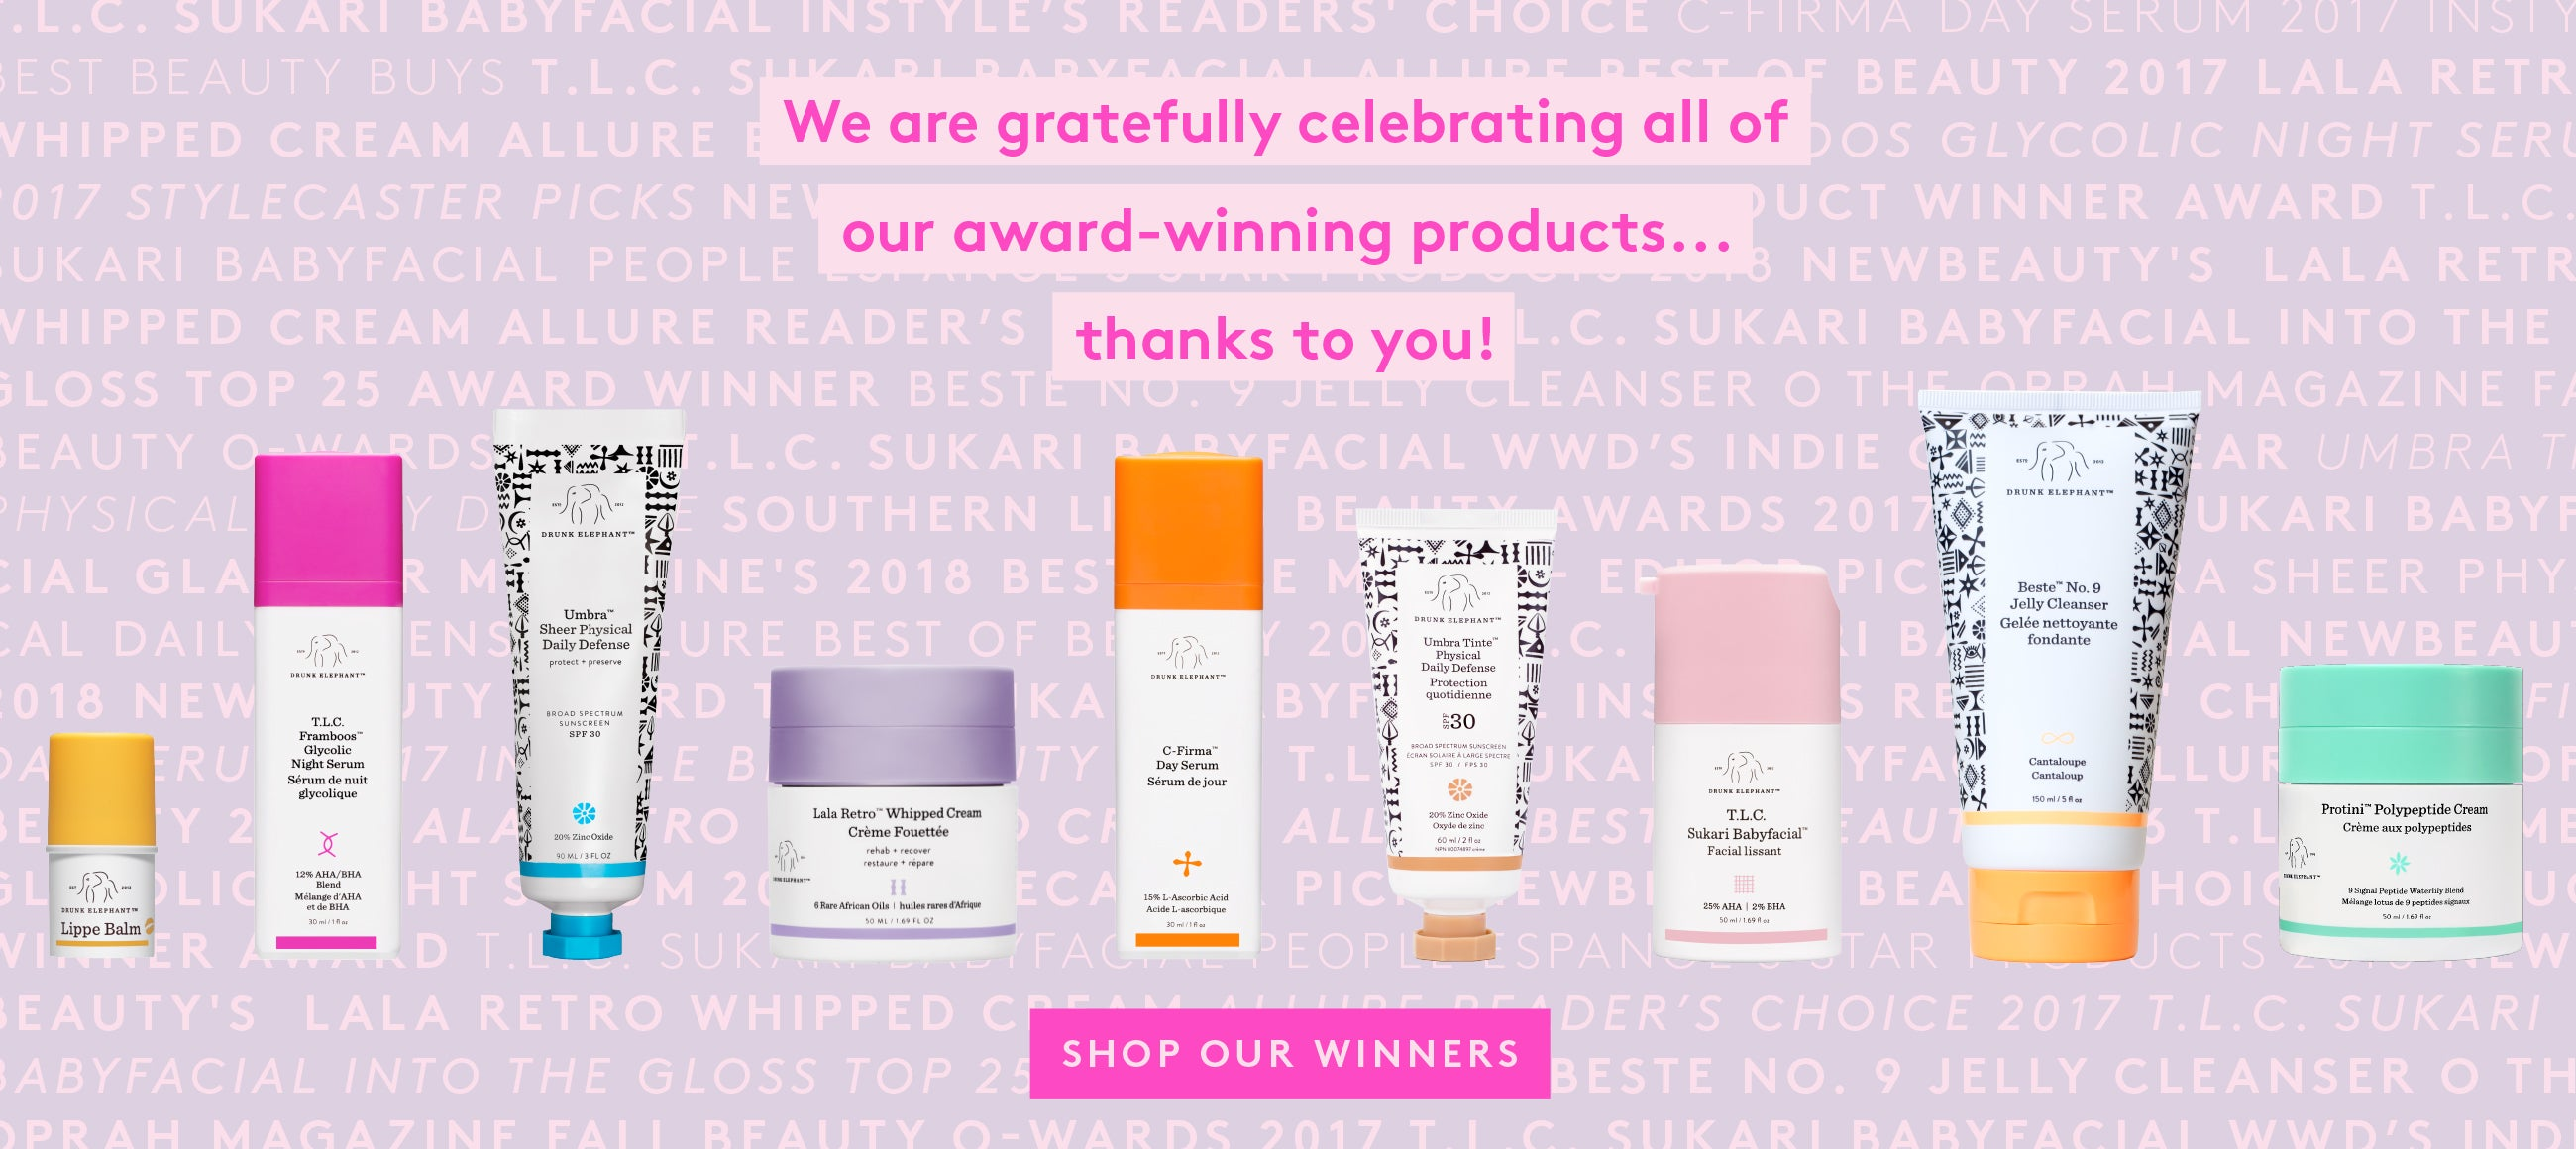 Vertical Mobile Banner Award Winning Products, feat Lippe Balm, TLC Glycolic Serum, Umbra Physical Sunscreen, Umbra Tinte tinted sunscreen, C-Firma Vitamin C Serum, Lala Retro Whipped Moisturizer, Babyfacial Mask, Beste Jelly Cleanser, Protini Moisturizer